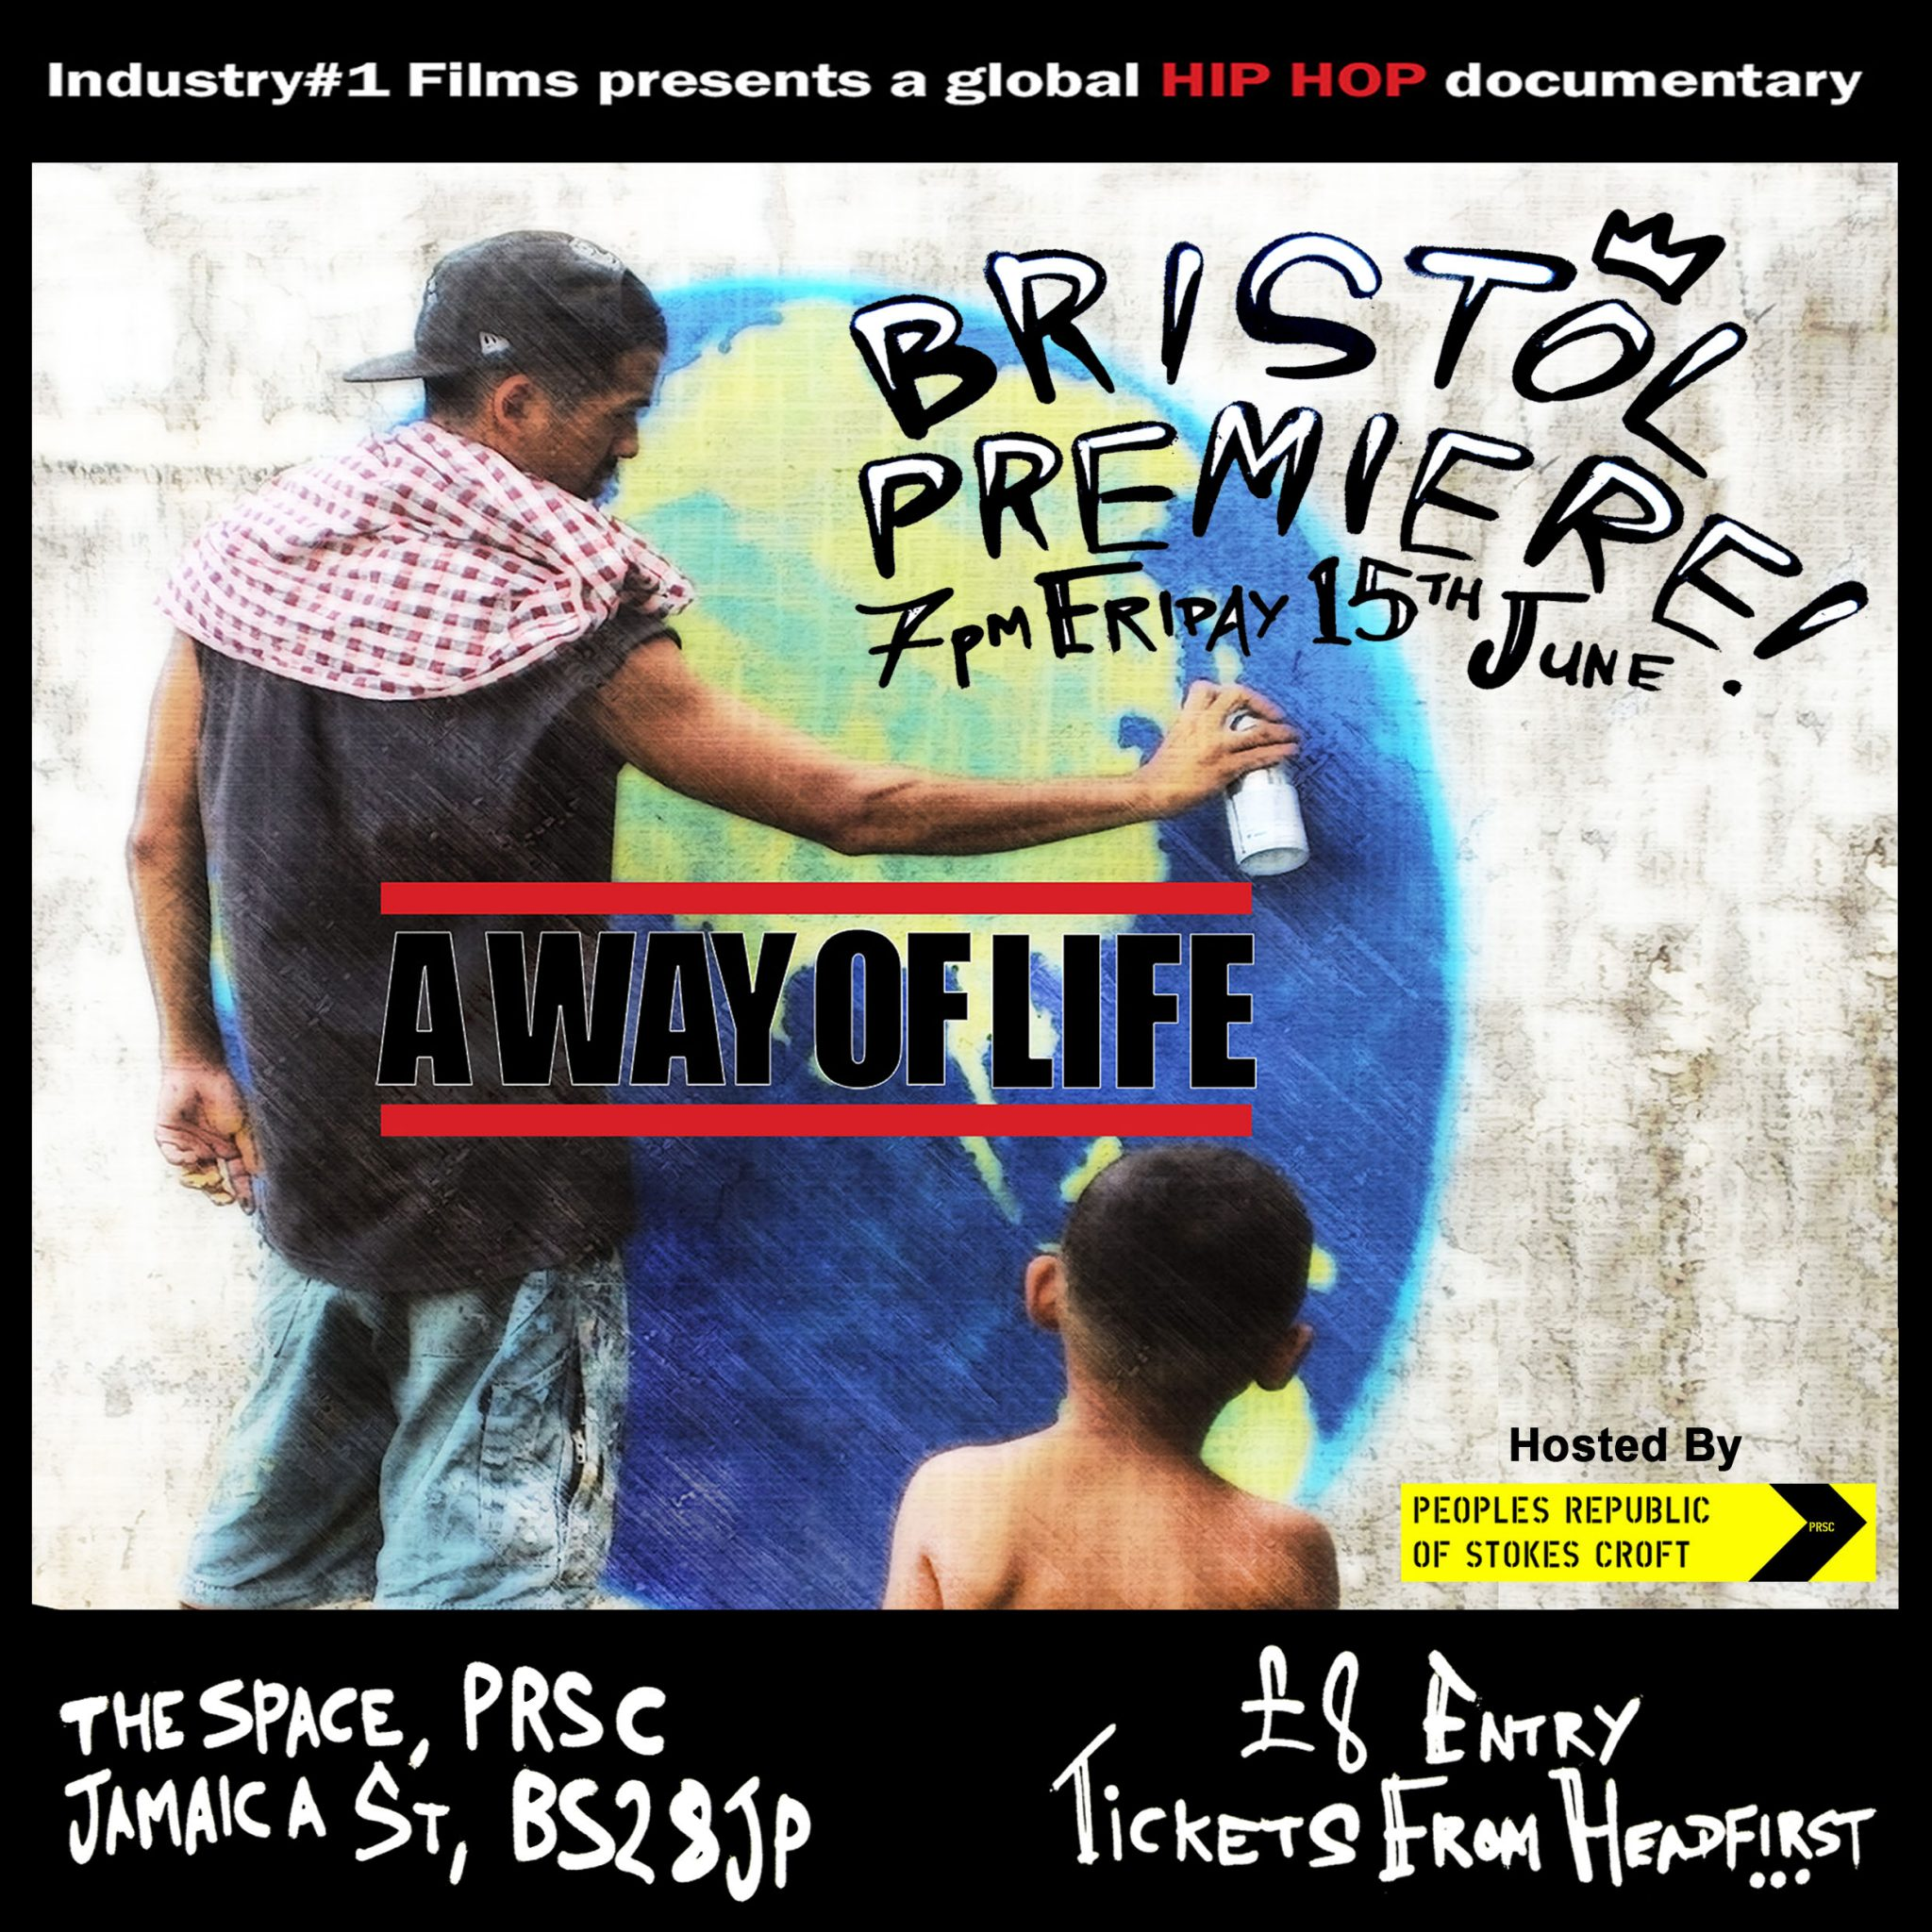 "A cinematic journey through the world of global Hip Hop. ""Hip hop is a basic attitude against oppression, the attitude that my voice isn't being heard, and I'm going make my voice heard no matter what, that goes across all races of people, all cultures"" - KRS-One (USA) PRSC and Industry#1 Films present the Bristol premiere screening of A Way of Life - a documentary celebrating global Hip Hop culture. With a DJ dropping beats, b-boys and b-girls cutting shapes, and paint spattered graff writers drawing on the walls, this night will be a joyous Bristol flavoured celebration of all things Hip Hop. Places limited so book early. About the movie: 'A Way Of Life' gives prominence to a culture that has gone beyond music, providing an accessible platform of expression for millions of people across the globe. Shot over a span of two years in 15 locations worldwide 'A Way Of Life' explores Hip-Hop culture from music to graffiti, beat boxing and break-dancing. The film charts Hip-Hop's progression through it's near 40 year existence from an underground subculture of New York ""Bronx"", Highlights include Brazilian artist Emicida being arrested for performing his social, political song HipHop; the Ghanaian Hip Life scene; and Hip Hop being used to teach English and life skills in Cambodia. Interviews include up and coming as well as established artists such as KRS One (USA), Skinnyman (UK), Jeru The Damaja (USA), Marcelo D2 (Brazil), Lord Finesse (USA) & Big Narstie (UK) illustrating their talent, background & the socio-cultural environments that influence their music. ""A Way Of Life is a life-affirming look at the origins & universality of hip-hop culture. The editing style & interview settings match the boot-strap nature of hip-hop itself. It is an education for the new arrivals to the scene & a heart-warming re-acquaintance for the long-time aficionados. It captures the love."" Whizz - London ""The most insightful and beautifully shot piece of film making on Hip Hop culture I have come across"" Wordplay Magazine ""Definitely needs to be seen"" Mys Diggi aka Mystro ""A new documentary seeks to shed light on the evolution of the culture into a worldwide consciousnesses"" XXL Magazine Featured Countries Australia / Brazil / Cambodia / Cuba / Denmark / Egypt / France / Germany / Ghana / India / Japan / Malaysia / Netherlands / Norway / Poland / Spain / Switzerland / Syria / UK / USA Featured Artists Big Narstie / Skinnyman / Masta Ace / Foreign Beggars / Jeru The Damaja / Stig of the Dump / Dead Prez (M1) / Krs One / Lord Finesse / Reverie / Gavlyn / Saigon / Marcelo D2 / Homeboy Sandman / Onyx / Doppelgangaz / Joe Flizzow / Sona One / Brainpower / Omar Offendum / Shay Rock (Maikal X) / Felix De Luca (Verb Ink) / King I Devine / Tommy Tee / Don Martin / Smith N Smart / VNM / Steffe La Cheffe / The Narcicyst / Bobbito Garcia / Emicida & many more... Biographies Industry #1 Industry #1 is an independent production company that uses film, music and art to entertain, inspire and educate its audience. Began in 2006 as an online platform to launch and promote artists from around the globe. The website showcased global Hip-Hop talent, featuring interviews & live reviews, before expanding to curate their own films and events. In 2013 Industry Number1 put together a number of global Hip Hop festivals in London and Geneva, Switzerland. The project took its present guise in 2012 as filming began for 'A Way Of Life' Global Hip Hop documentary. Shibe Alawiye (Director, Producer, Editor) Shibe Alawiye has been working in film production and broadcast for almost a decade, beginning his career as runner at Crow TV. He then went on to created his own production company Camerashai providing filming and editing services for films, documentaries and promos. Shibe was an editor for the BBC at Bestival and won Best Newcomer Award in 2006 at the Portobello Film Festival for his short film Our Fate, which led him on to creating, editing and producing the feature length documentary ""Makers Our Story"" released in both the US and UK. Andre Hopkin (Producer, Writer, Researcher Andre's background is predominantly marketing, promotion and analytics. His journey started with a BA in Computer Science achieved at the Polytechnical University College in Stavanger. He then developed web based marketing and e- commerce solutions for various companies focusing with sales and analytics. In the last couple of years Andre has been setting up the Industry #1 site whilst filming at various events and festivals that have contributed to 'A Way Of Life' Global Hip-Hop documentary."